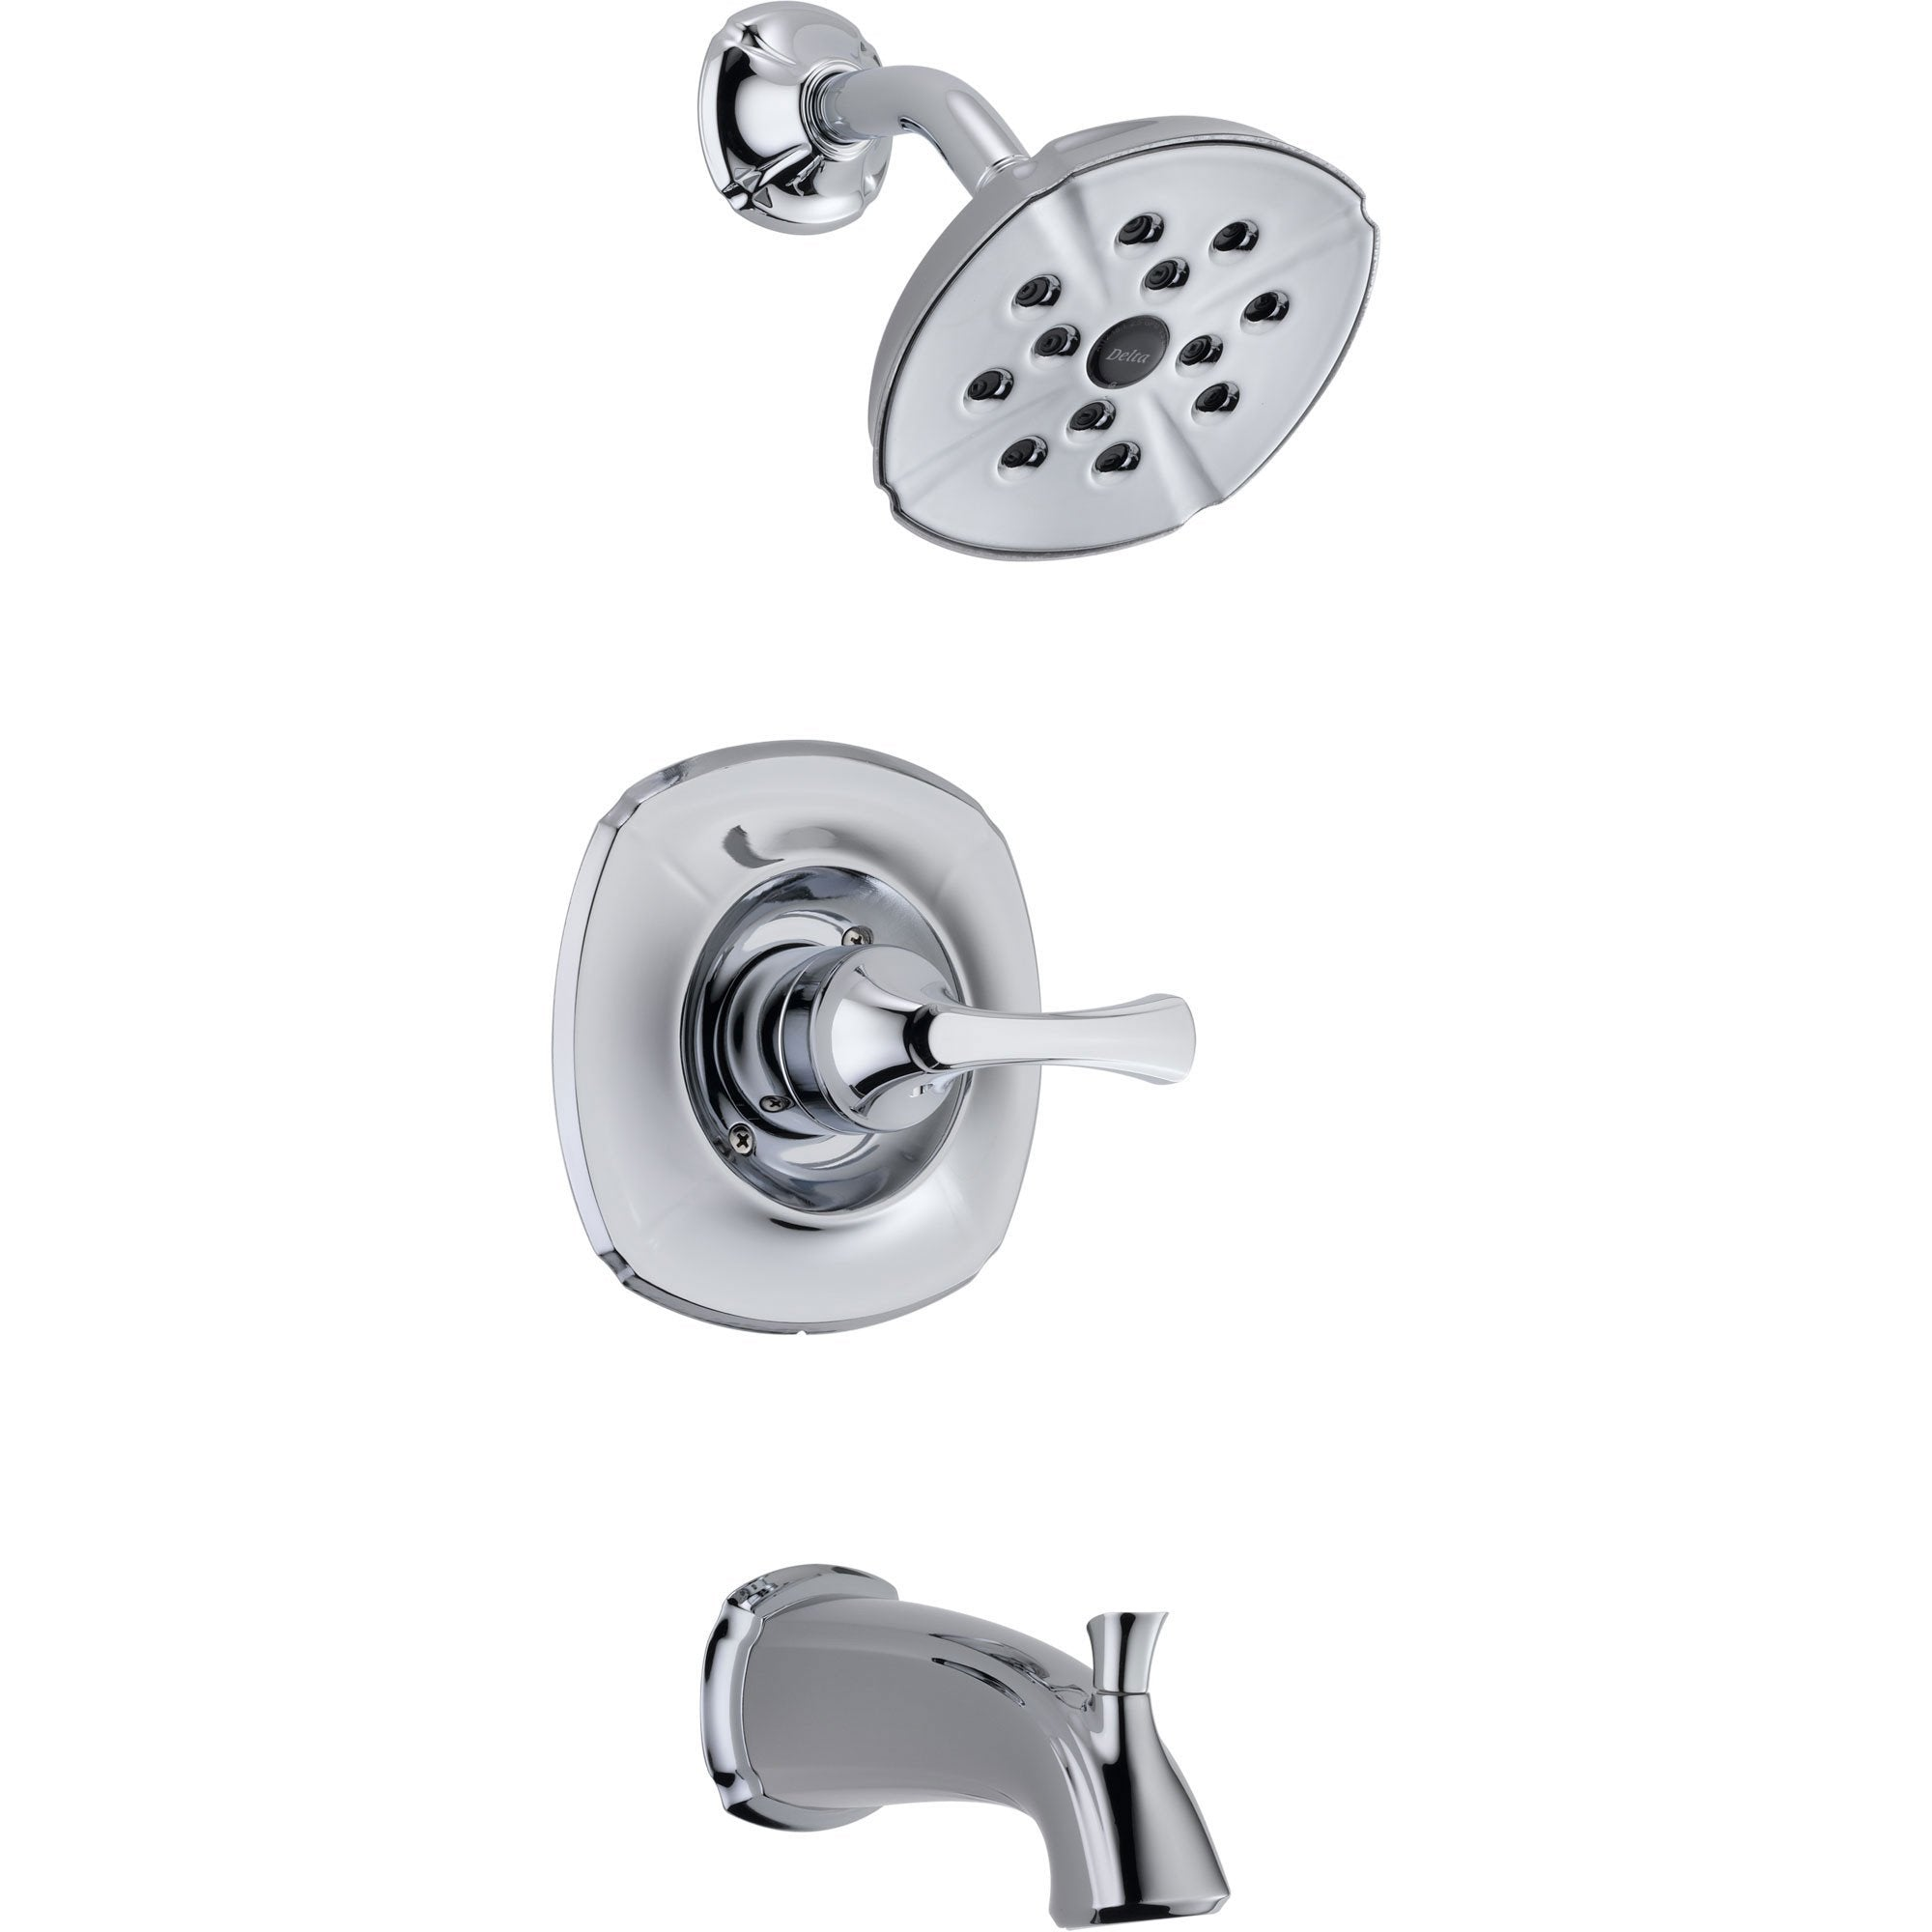 Delta Addison Modern Wall Mount Chrome Tub and Shower Faucet Trim Kit 476402